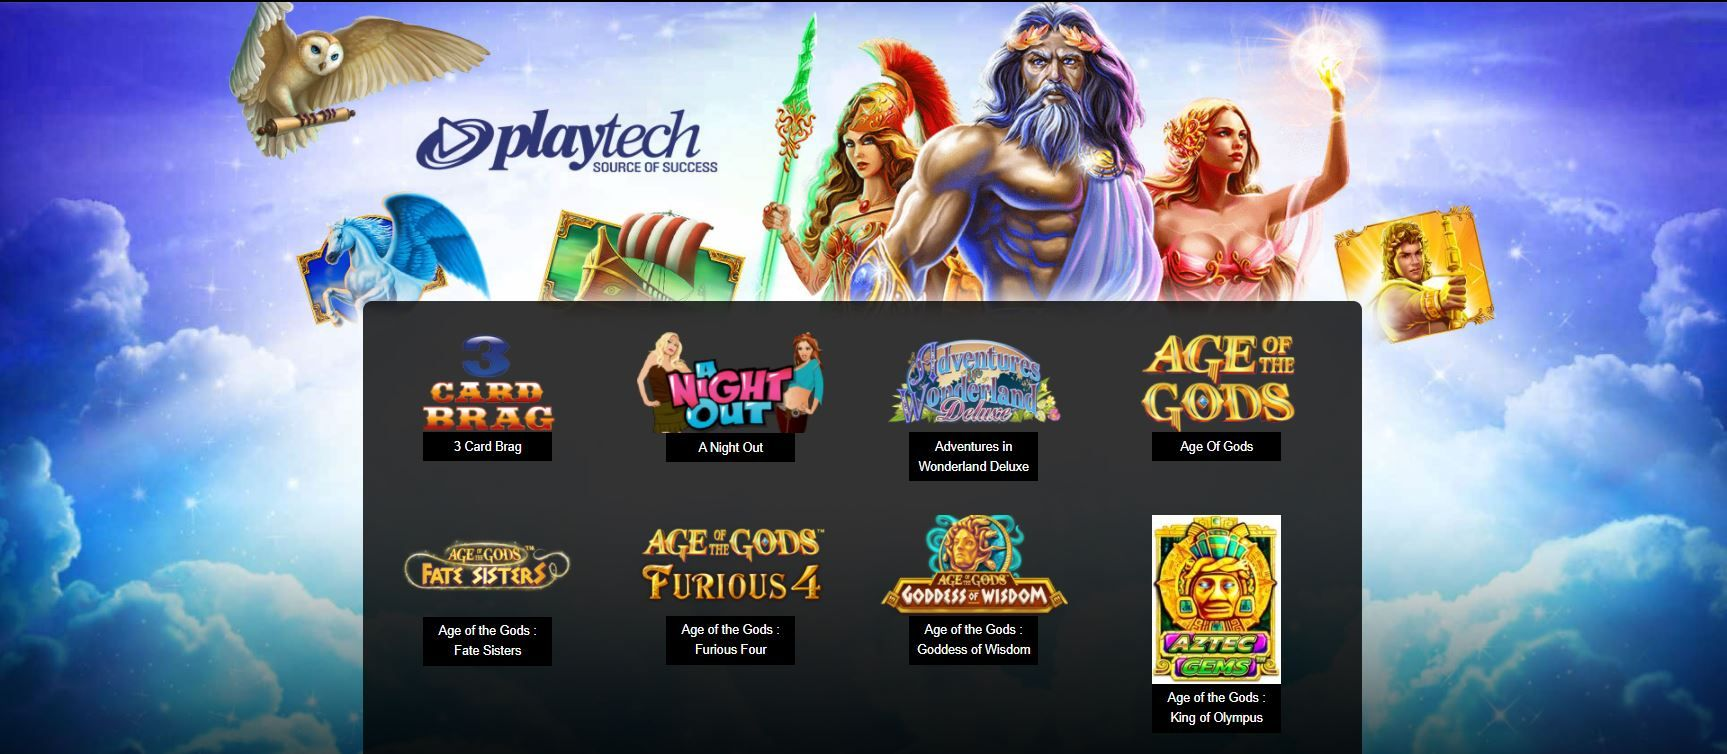 Playtech ONE Mobile Slot Games Online Malaysia | Slots games, Play online  casino, Online casino games